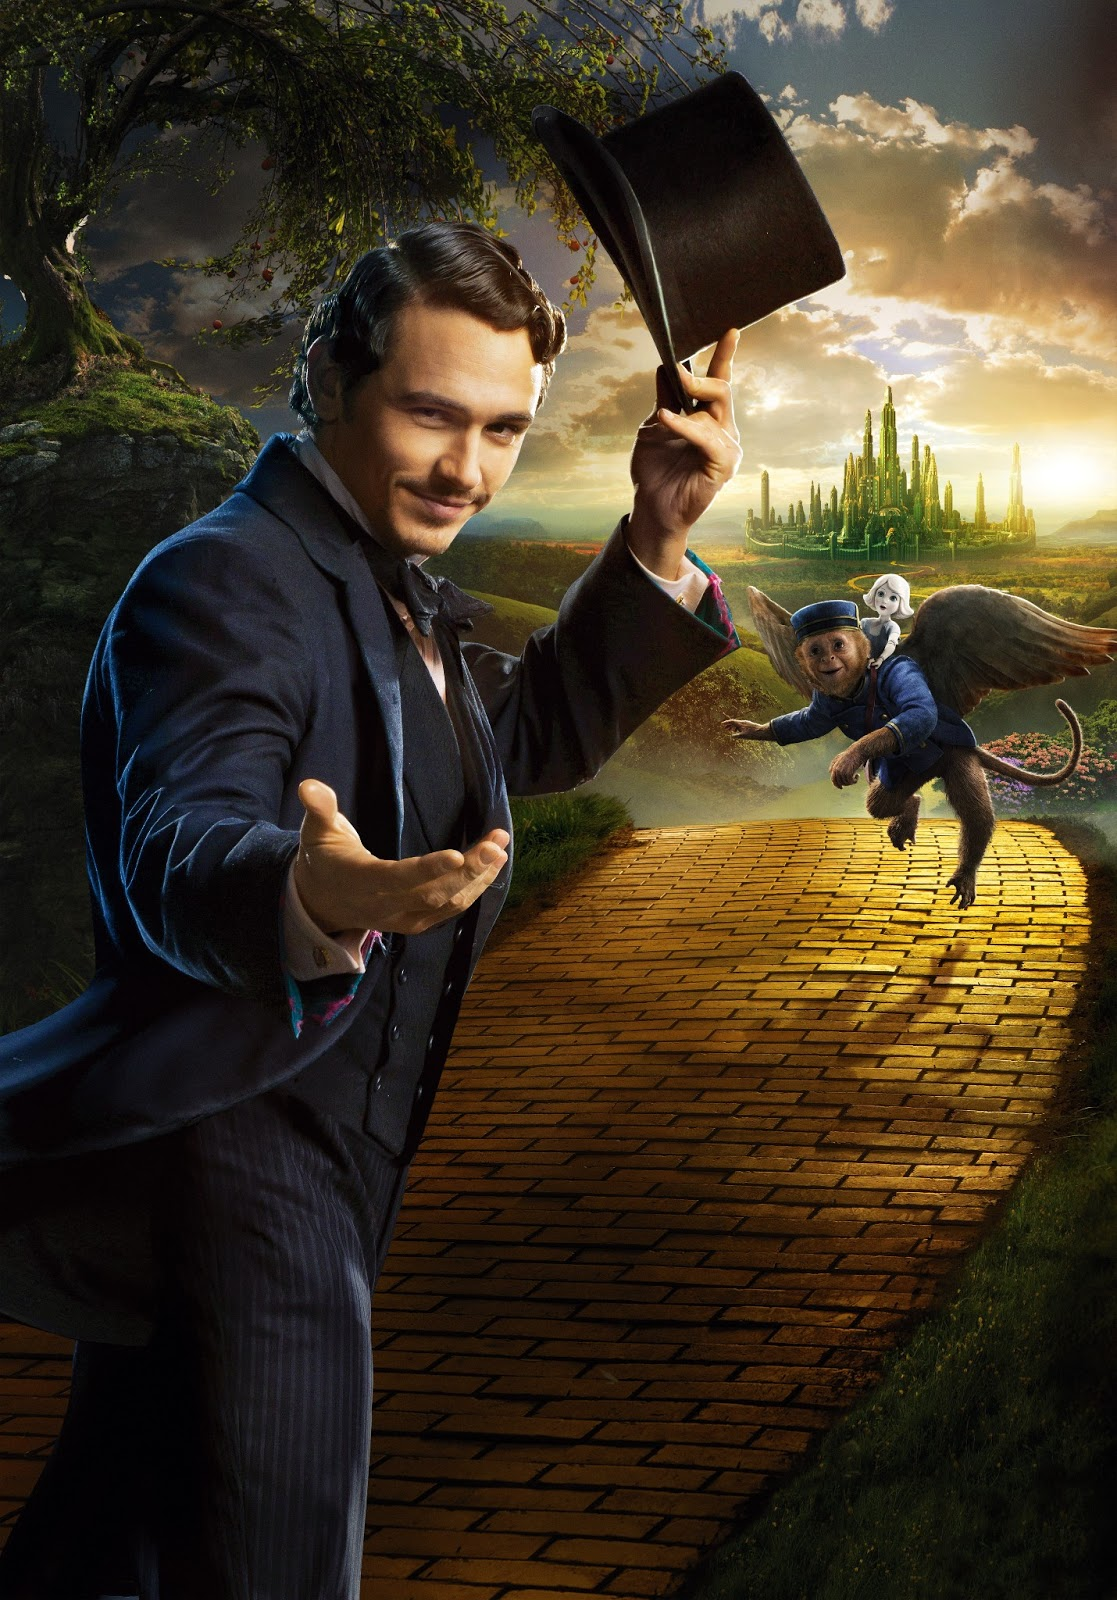 Oz the Great and Powerful Serie de Textless posters